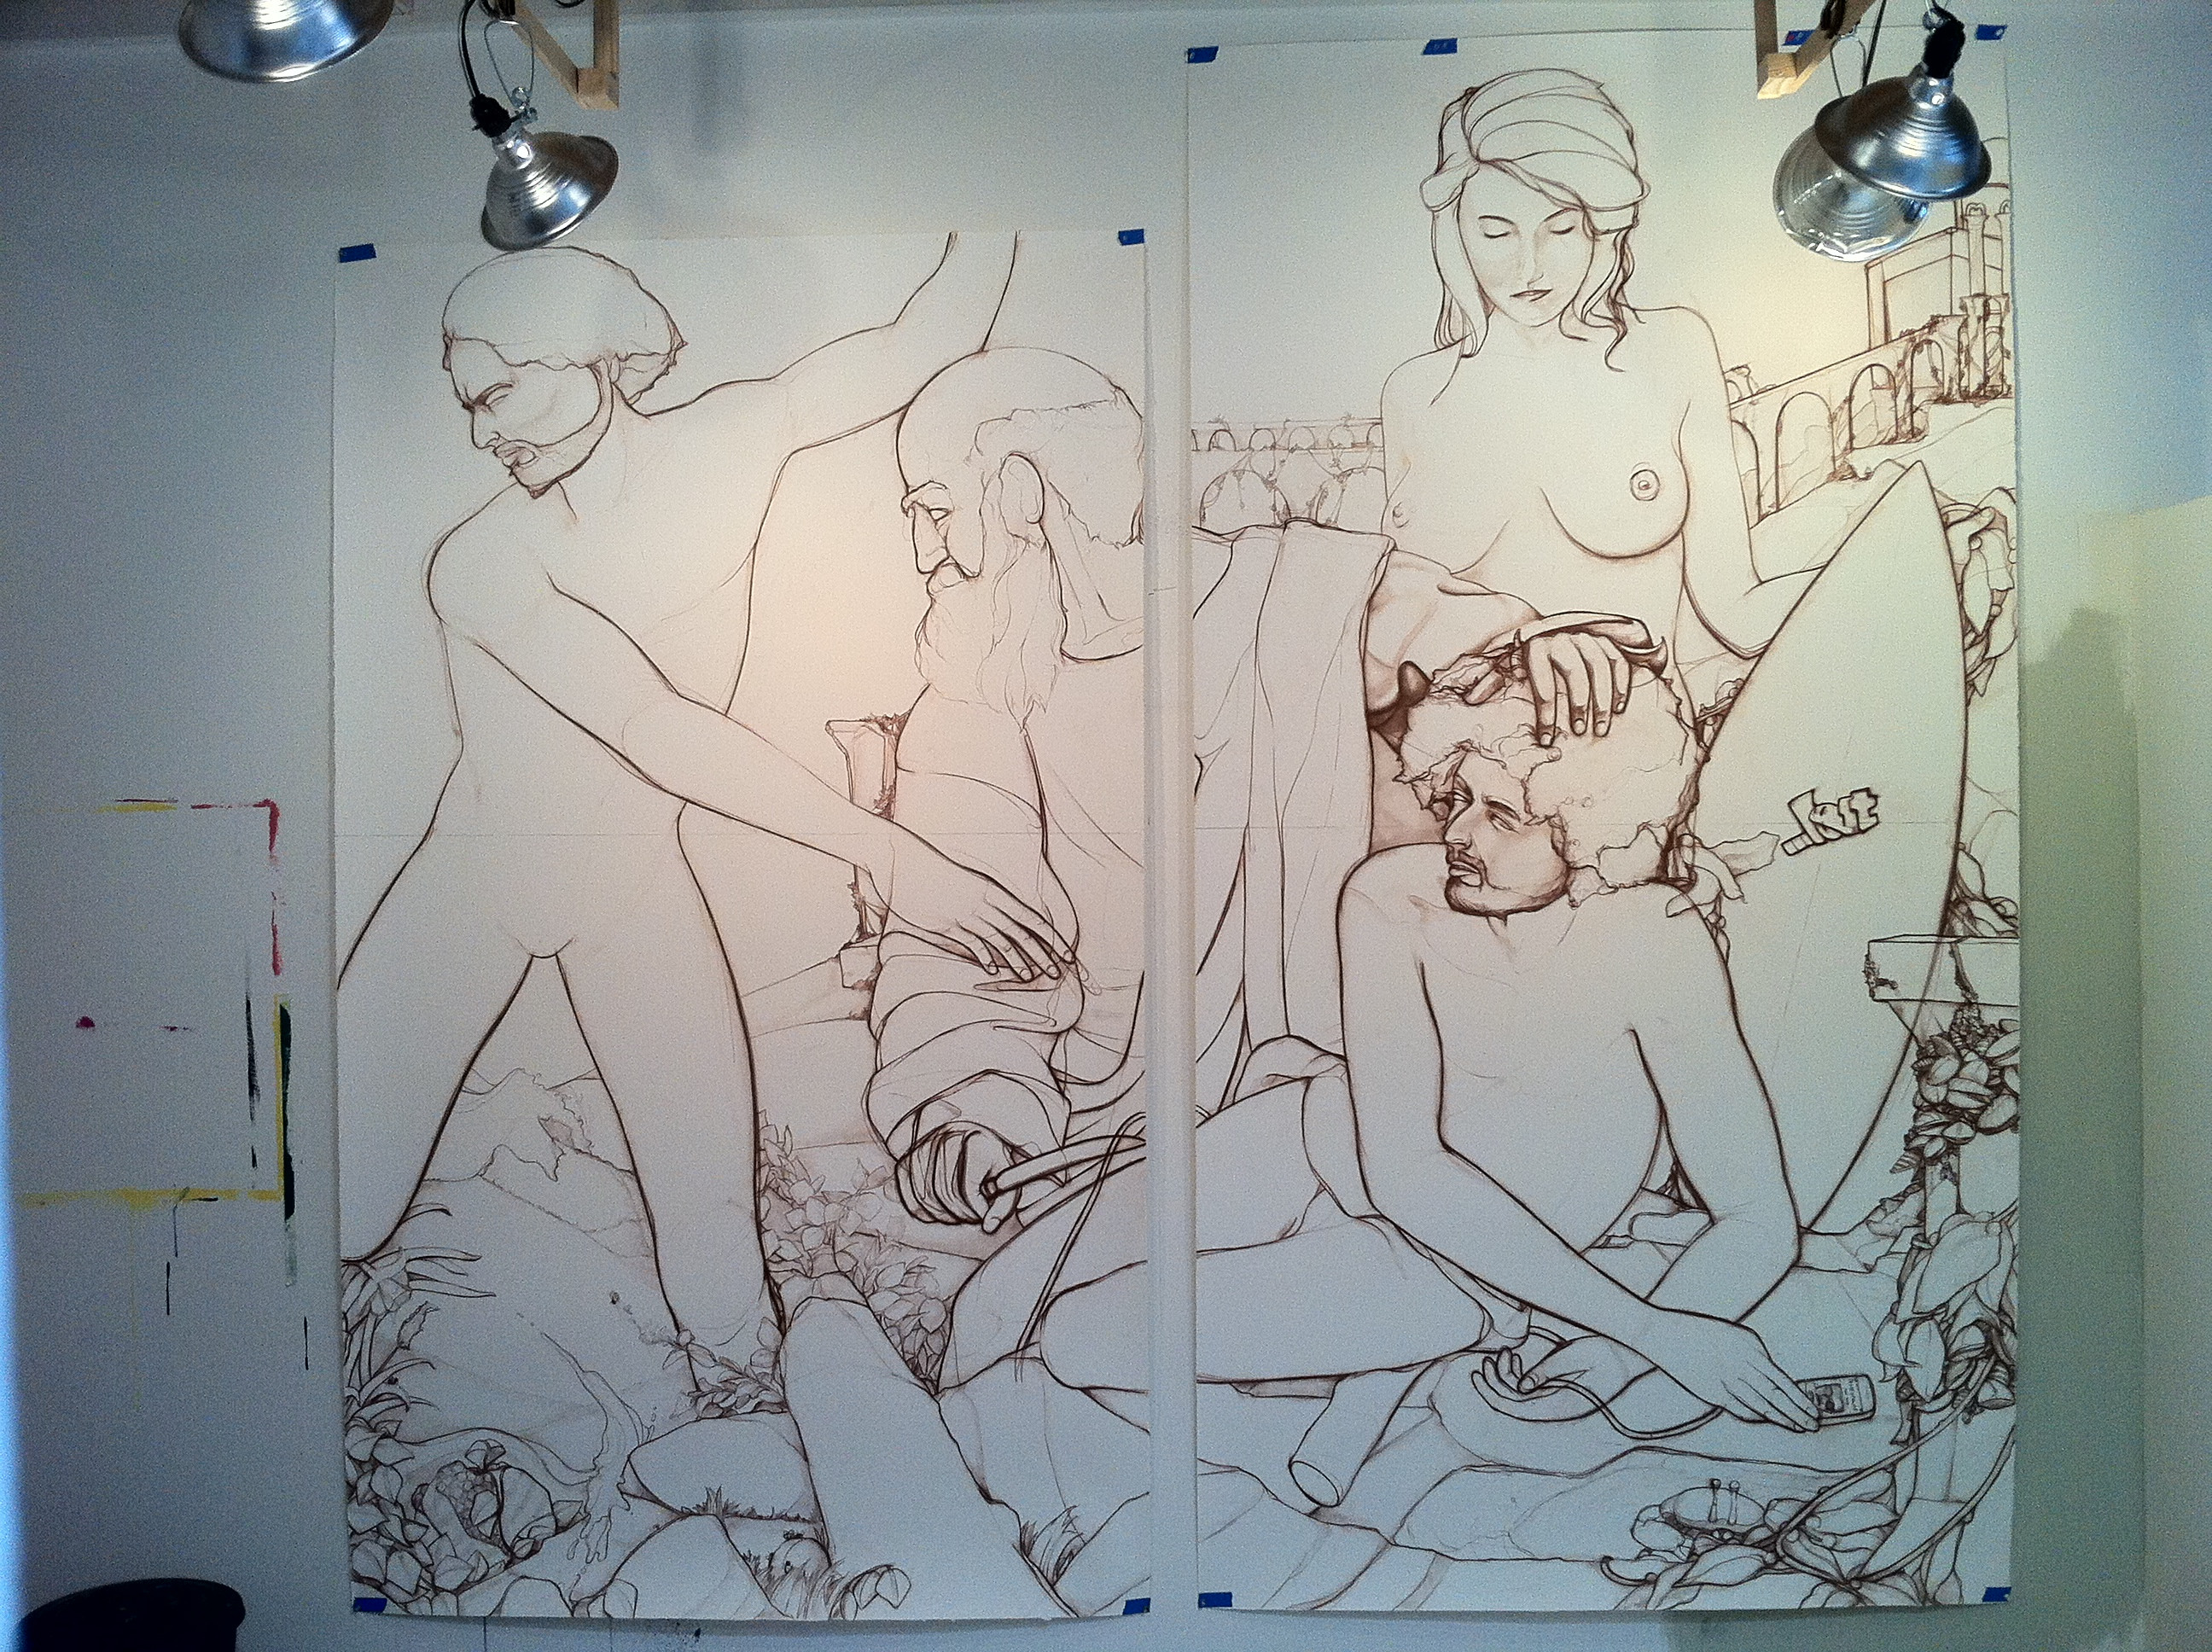 9 foot at it's tallest point mural scale charcoal drawing